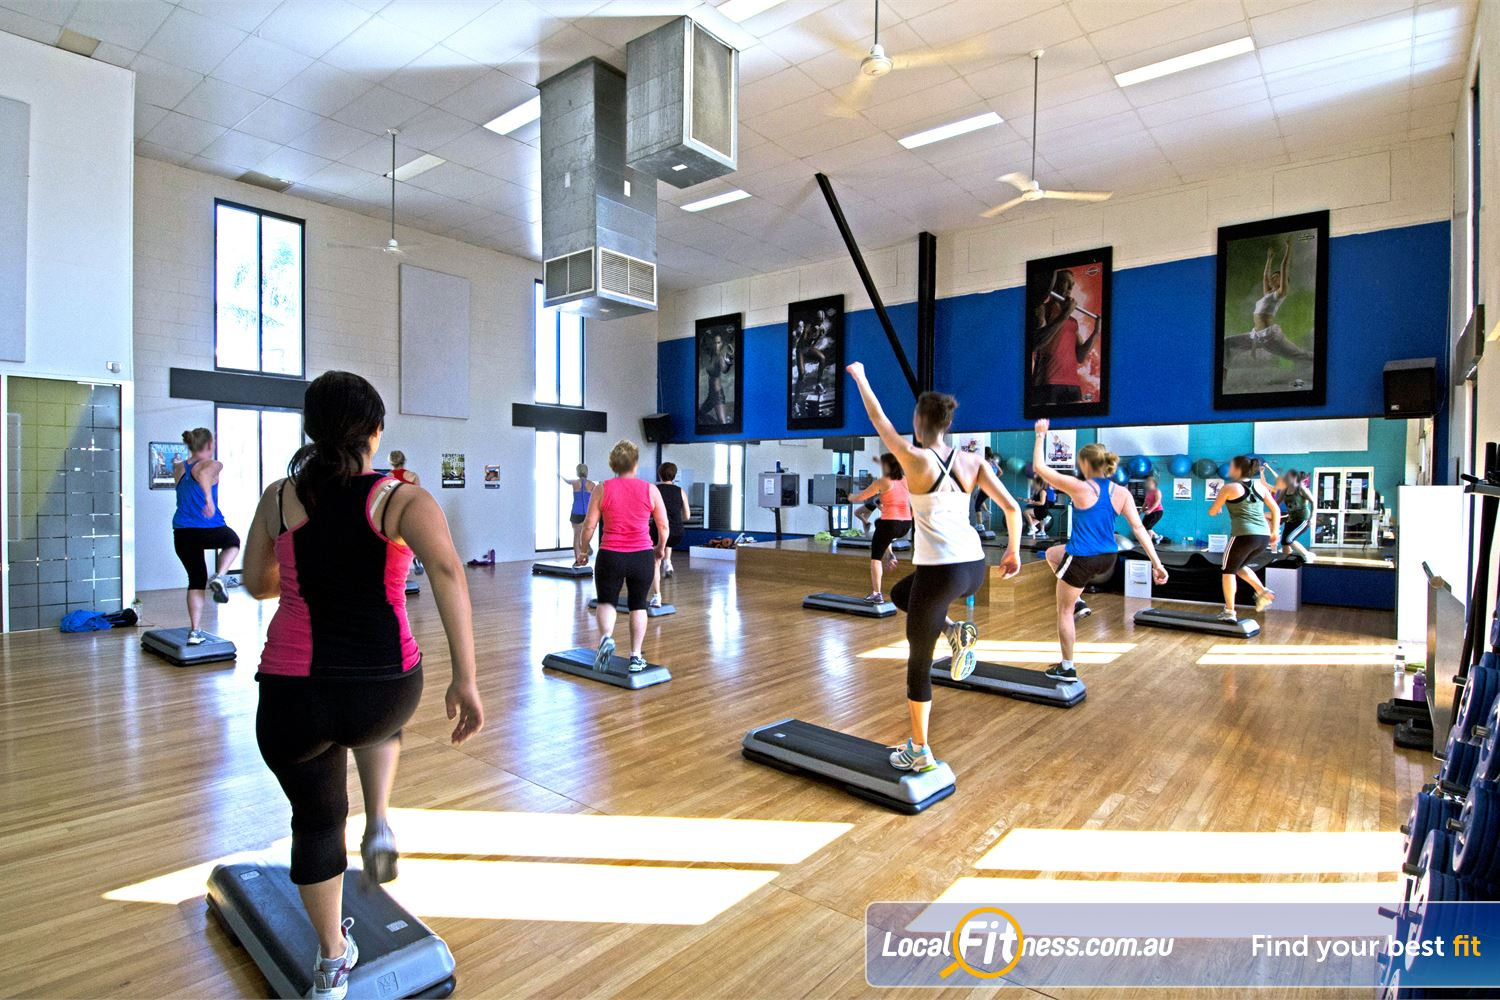 Goodlife Health Clubs Near Tennyson Our group fitness timetable includes relaxing classes such as GracevilleYoga and Pilates.